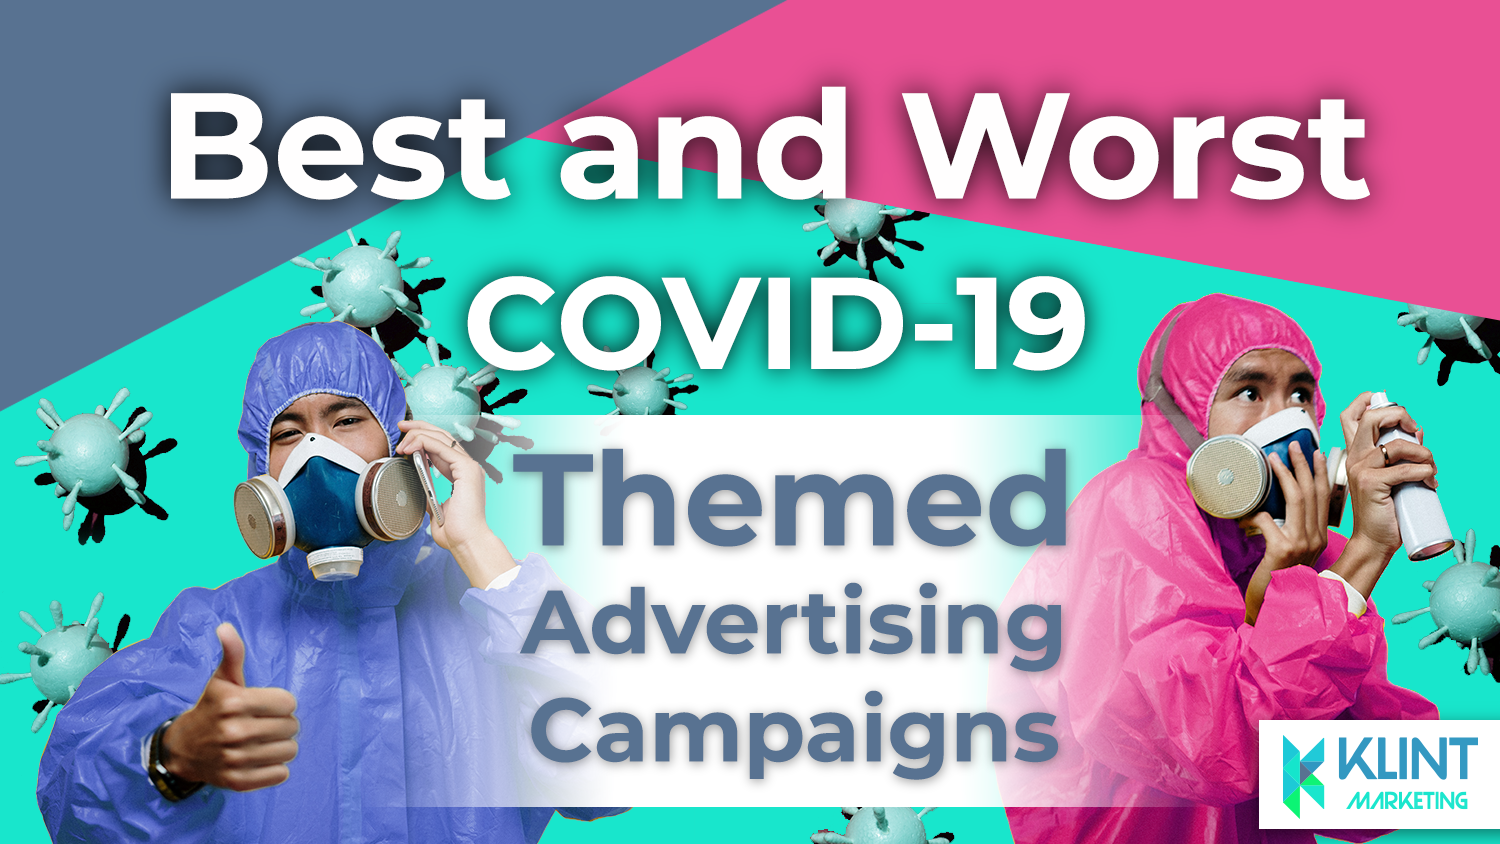 The Best and Worst Ad Campaigns of 2020